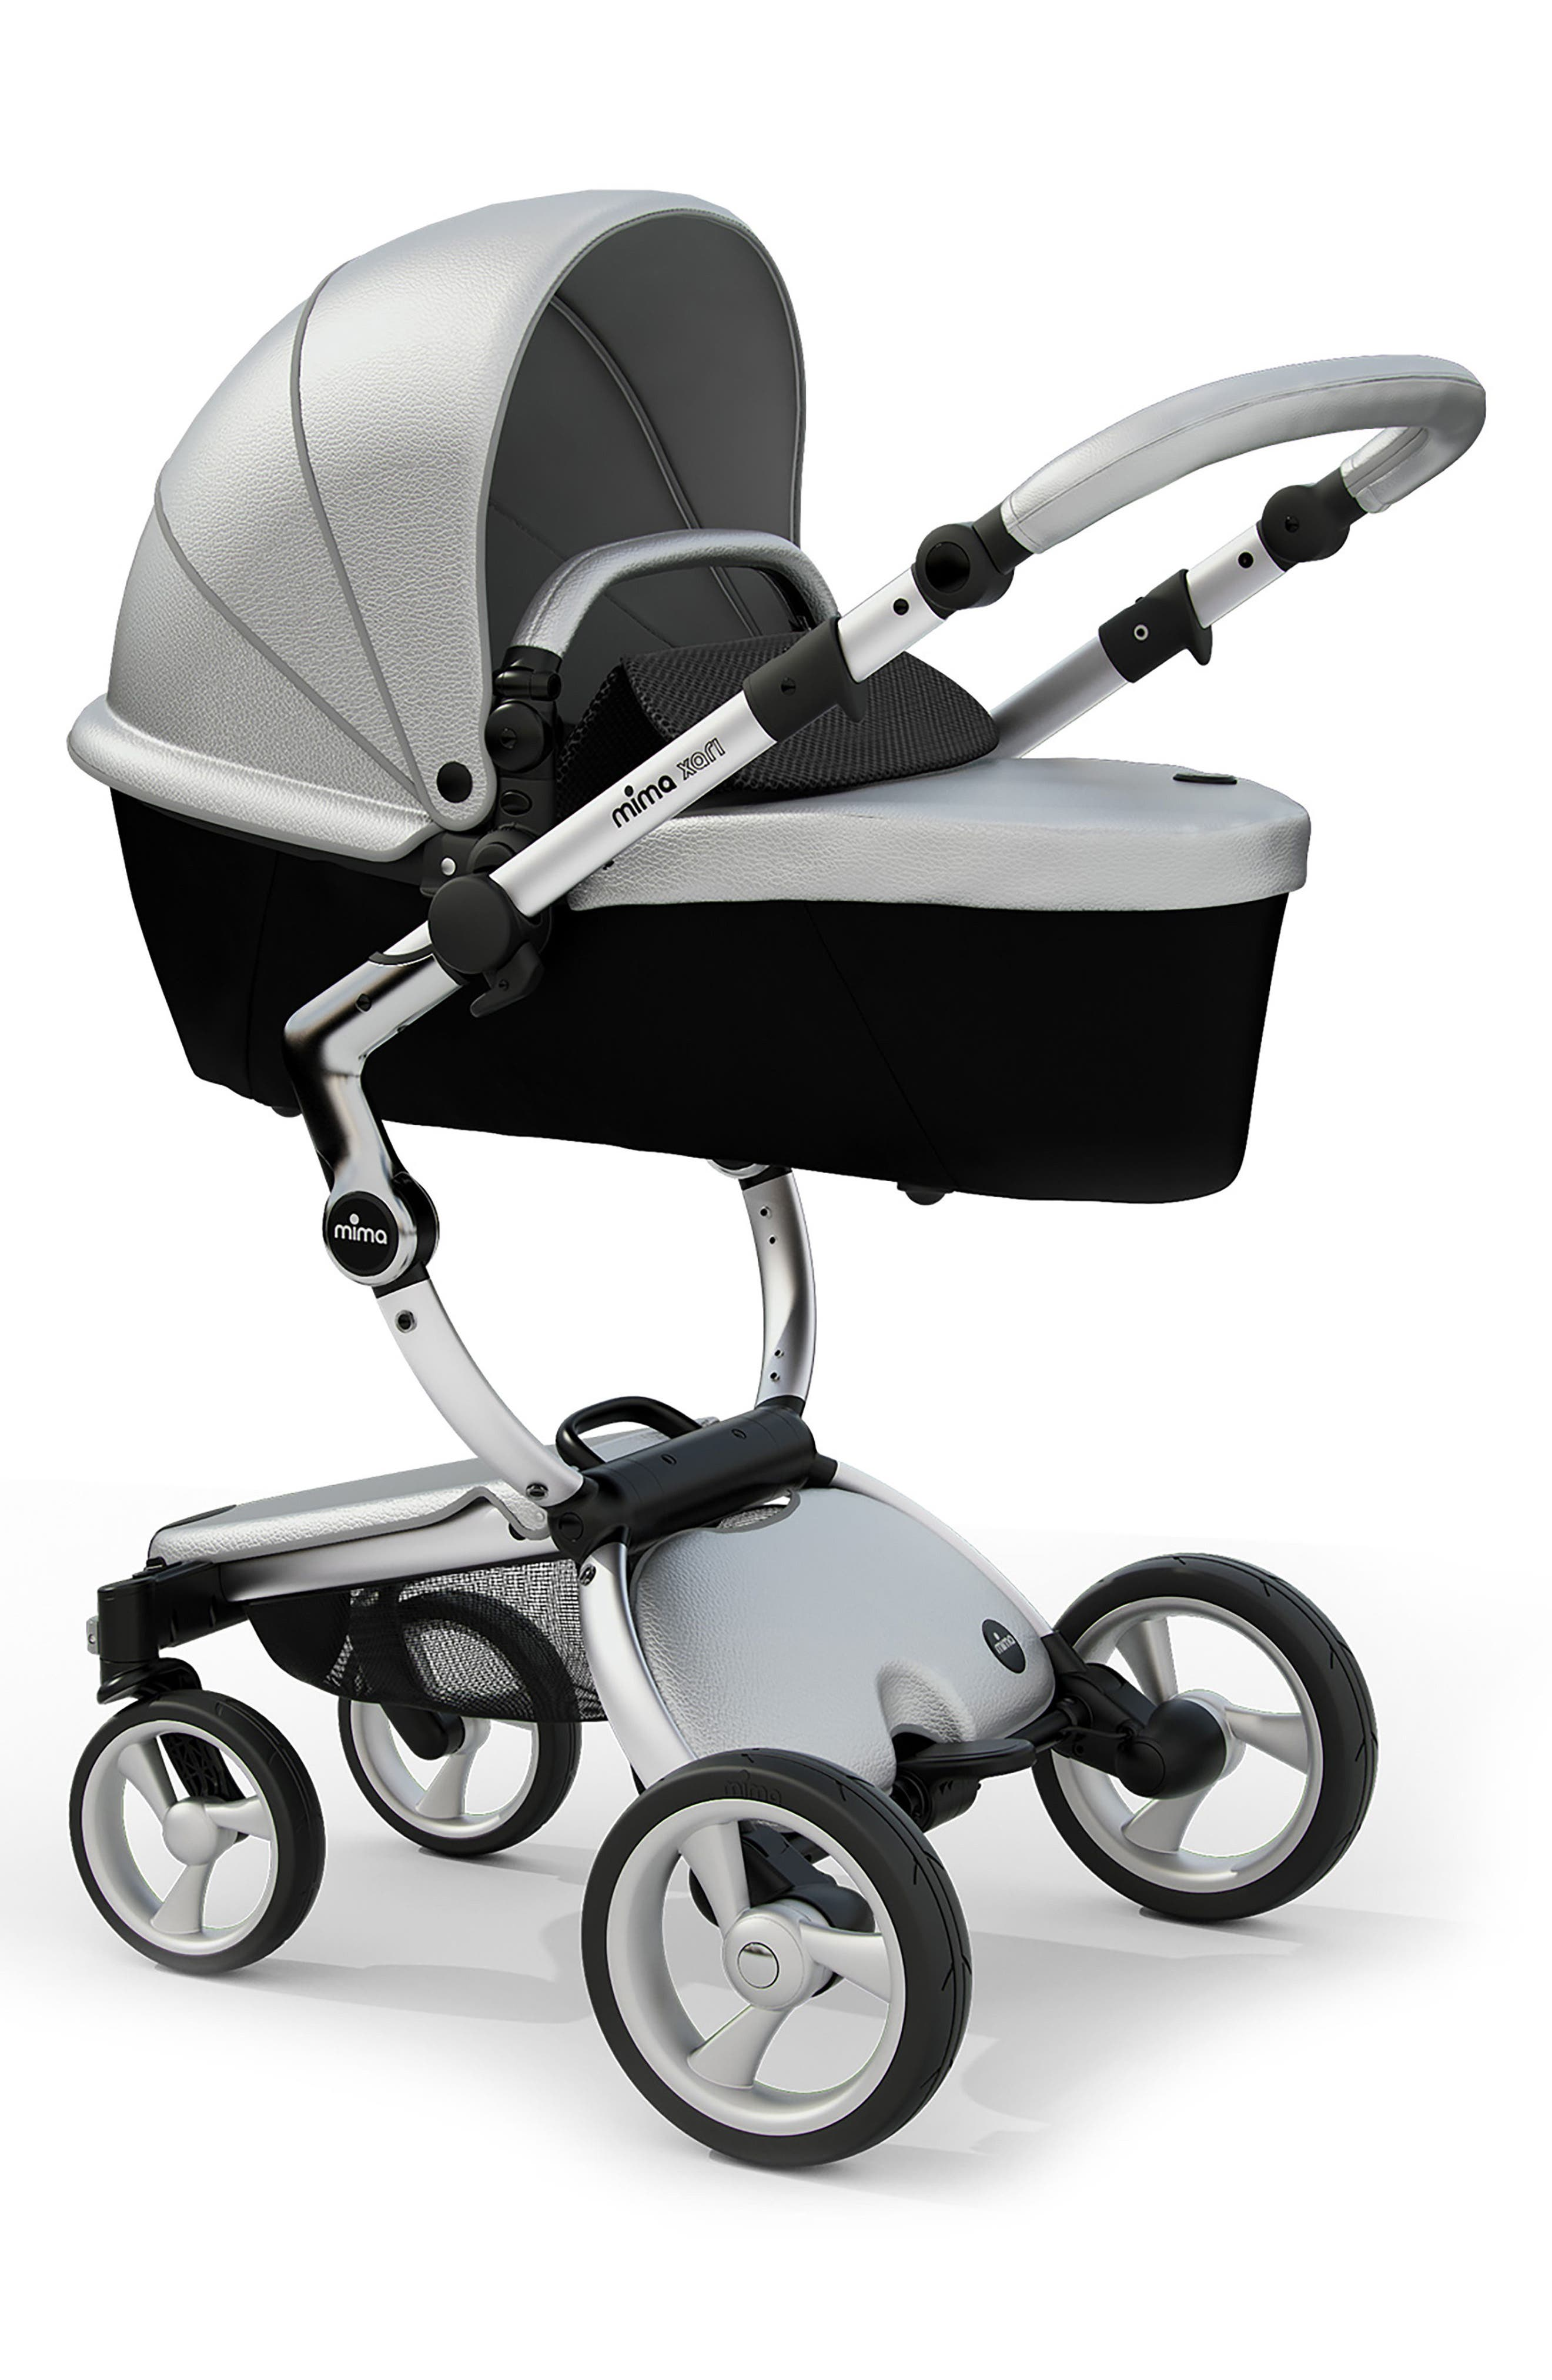 Xari Aluminum Chassis Stroller with Reversible Reclining Seat & Carrycot,                             Alternate thumbnail 2, color,                             ARGENTO / BLACK